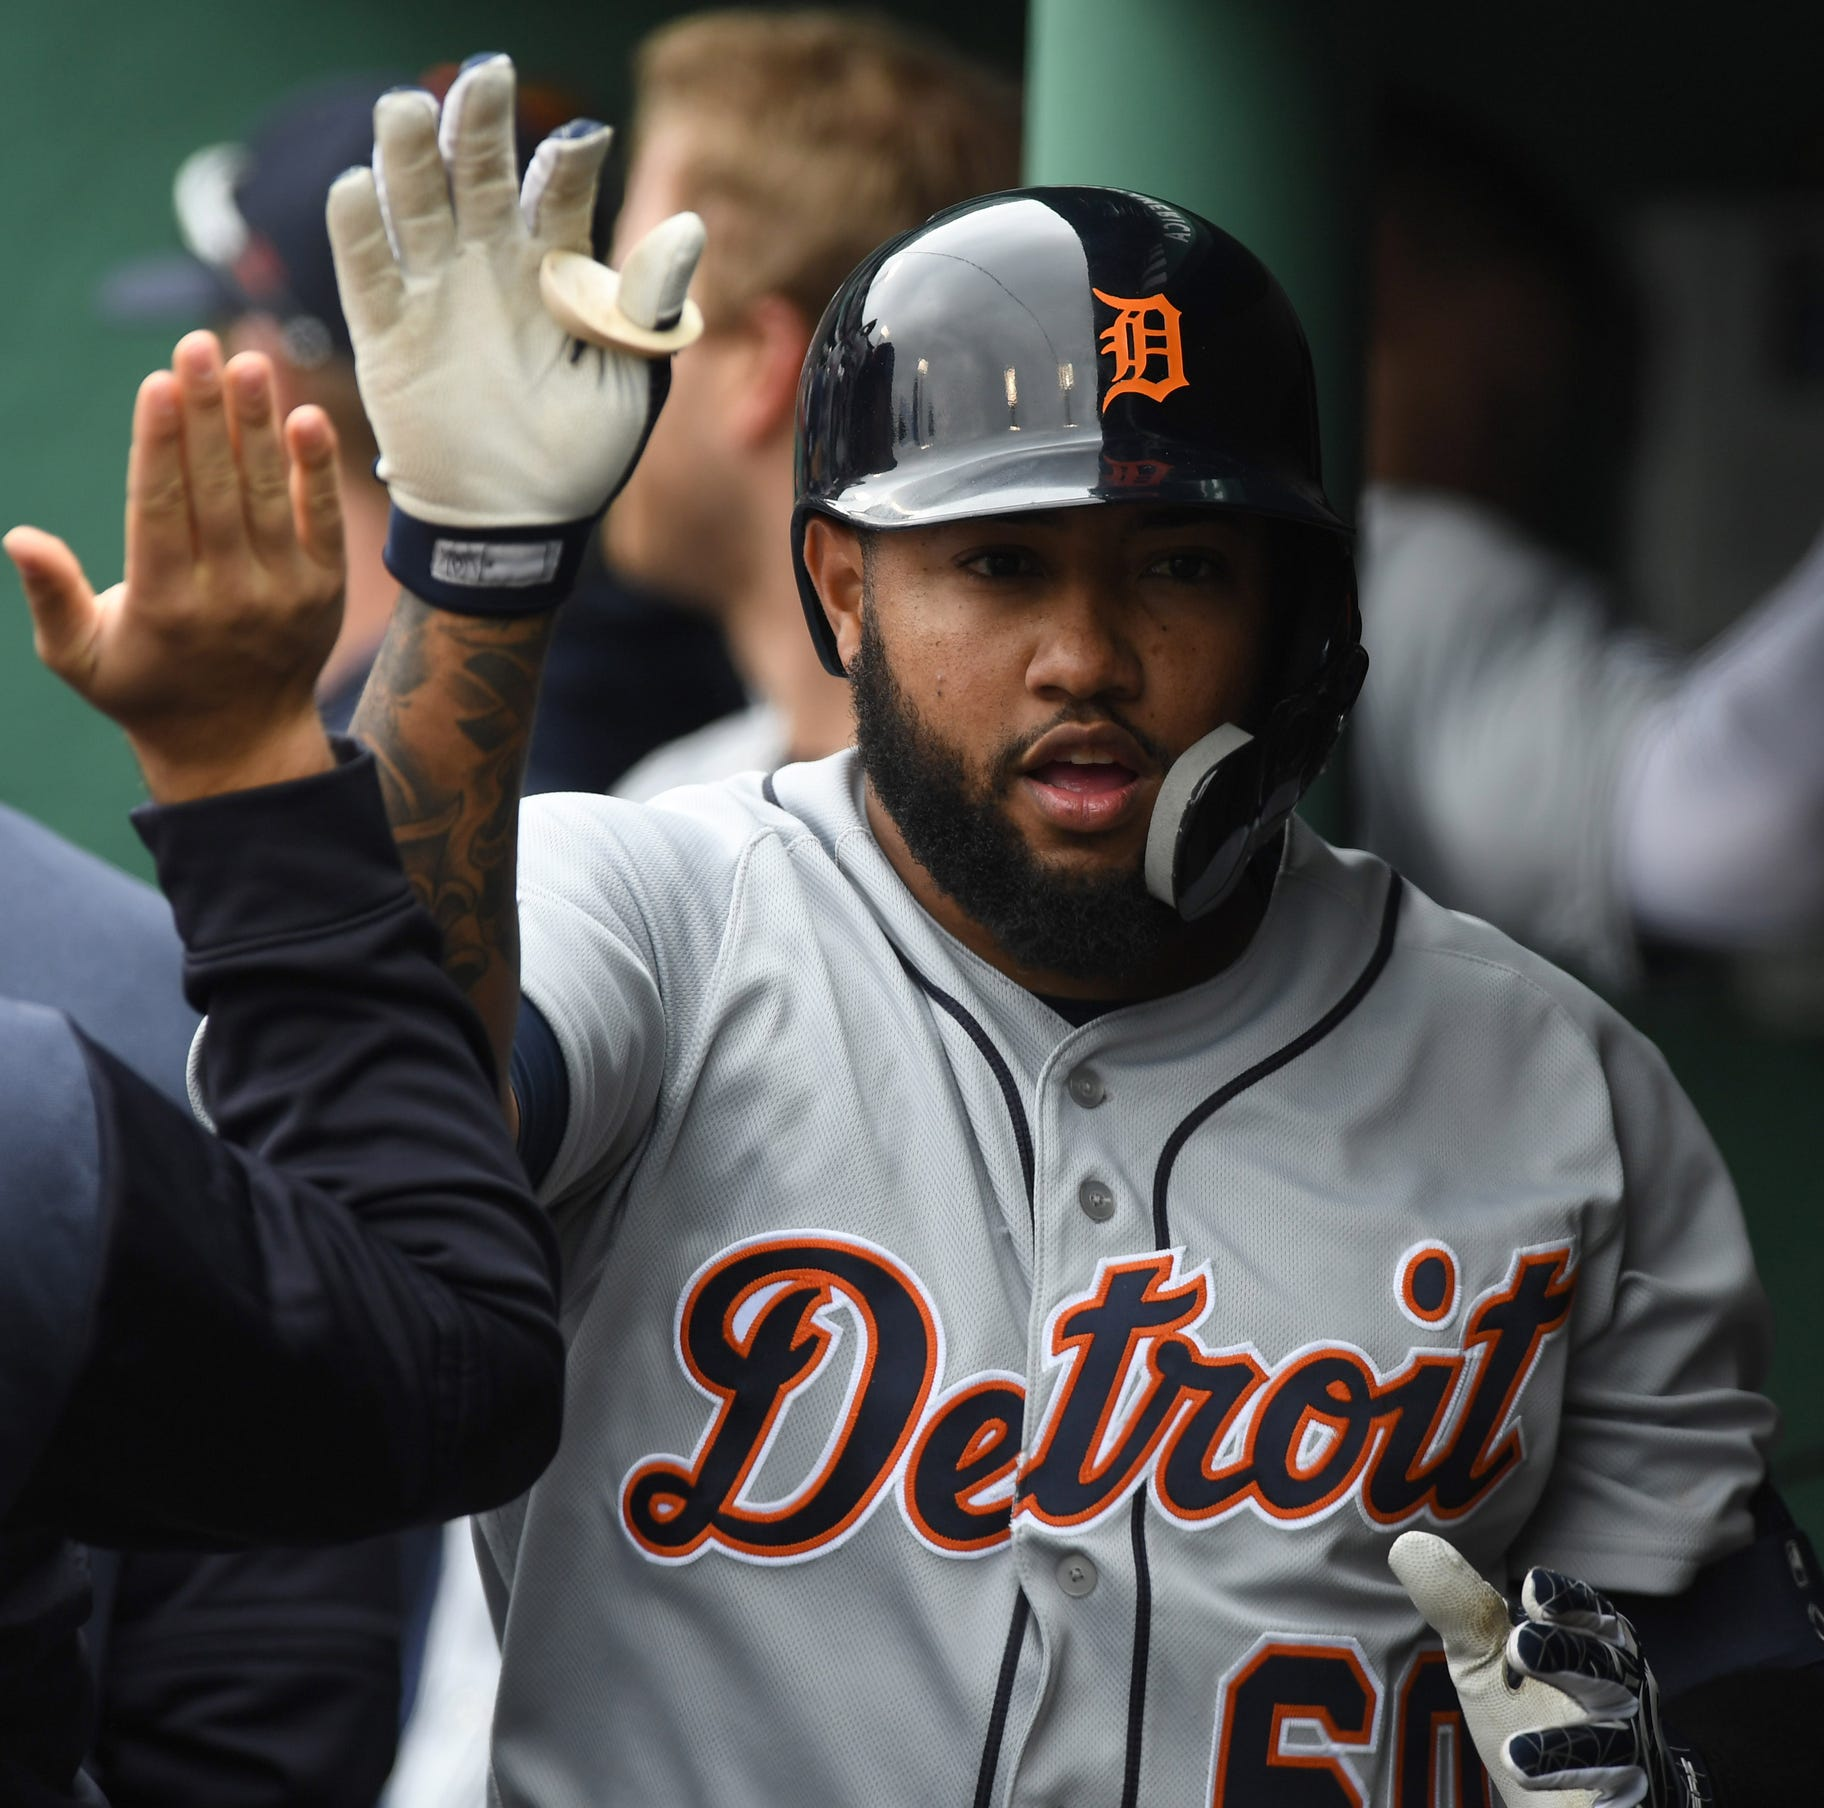 Detroit Tigers get help from unlikely heroes in 7-4 win at Boston Red Sox